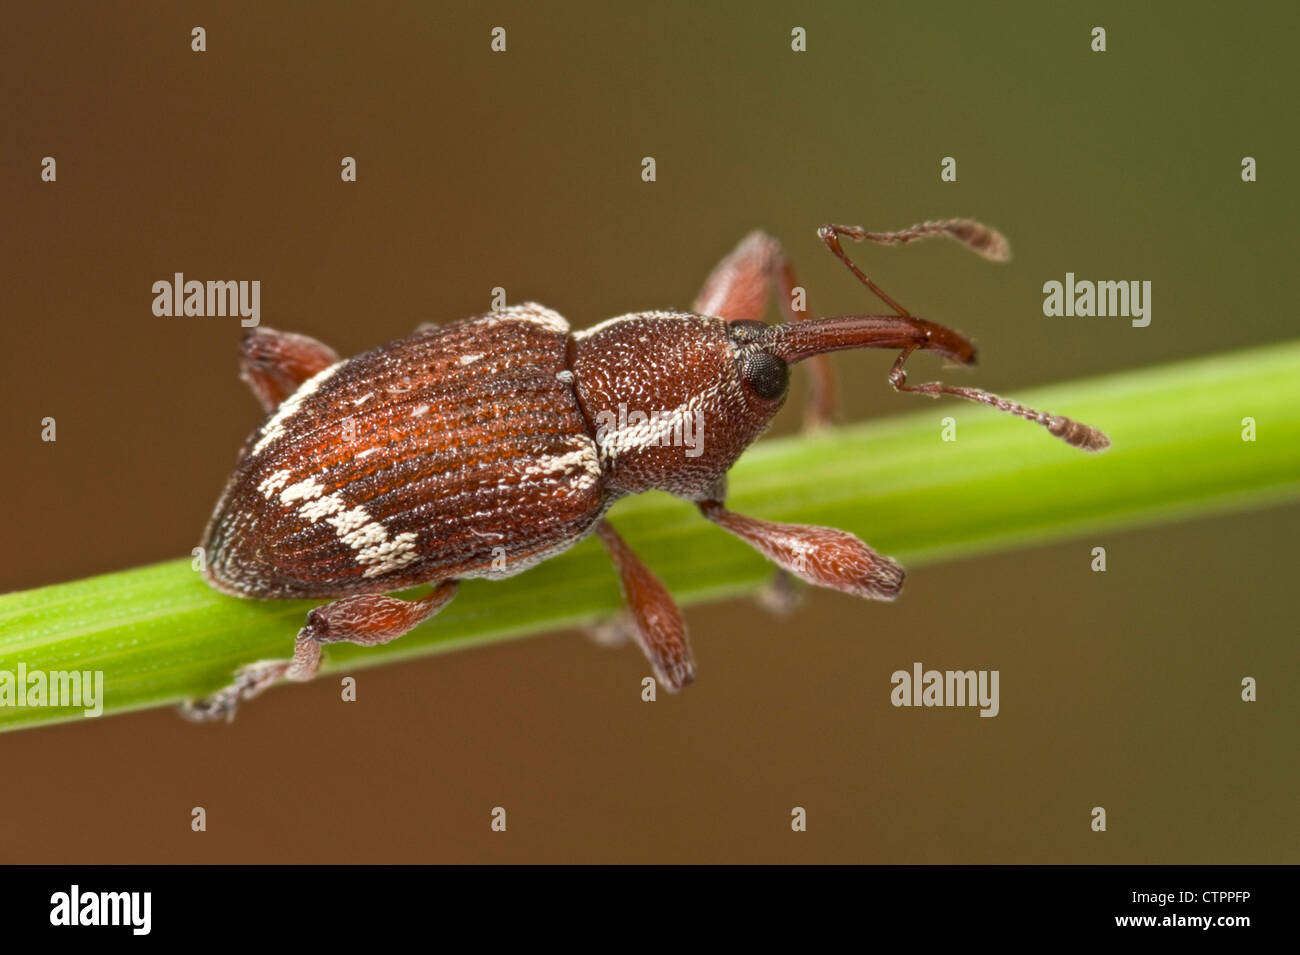 Small brown weevil on plant stem - Stock Image